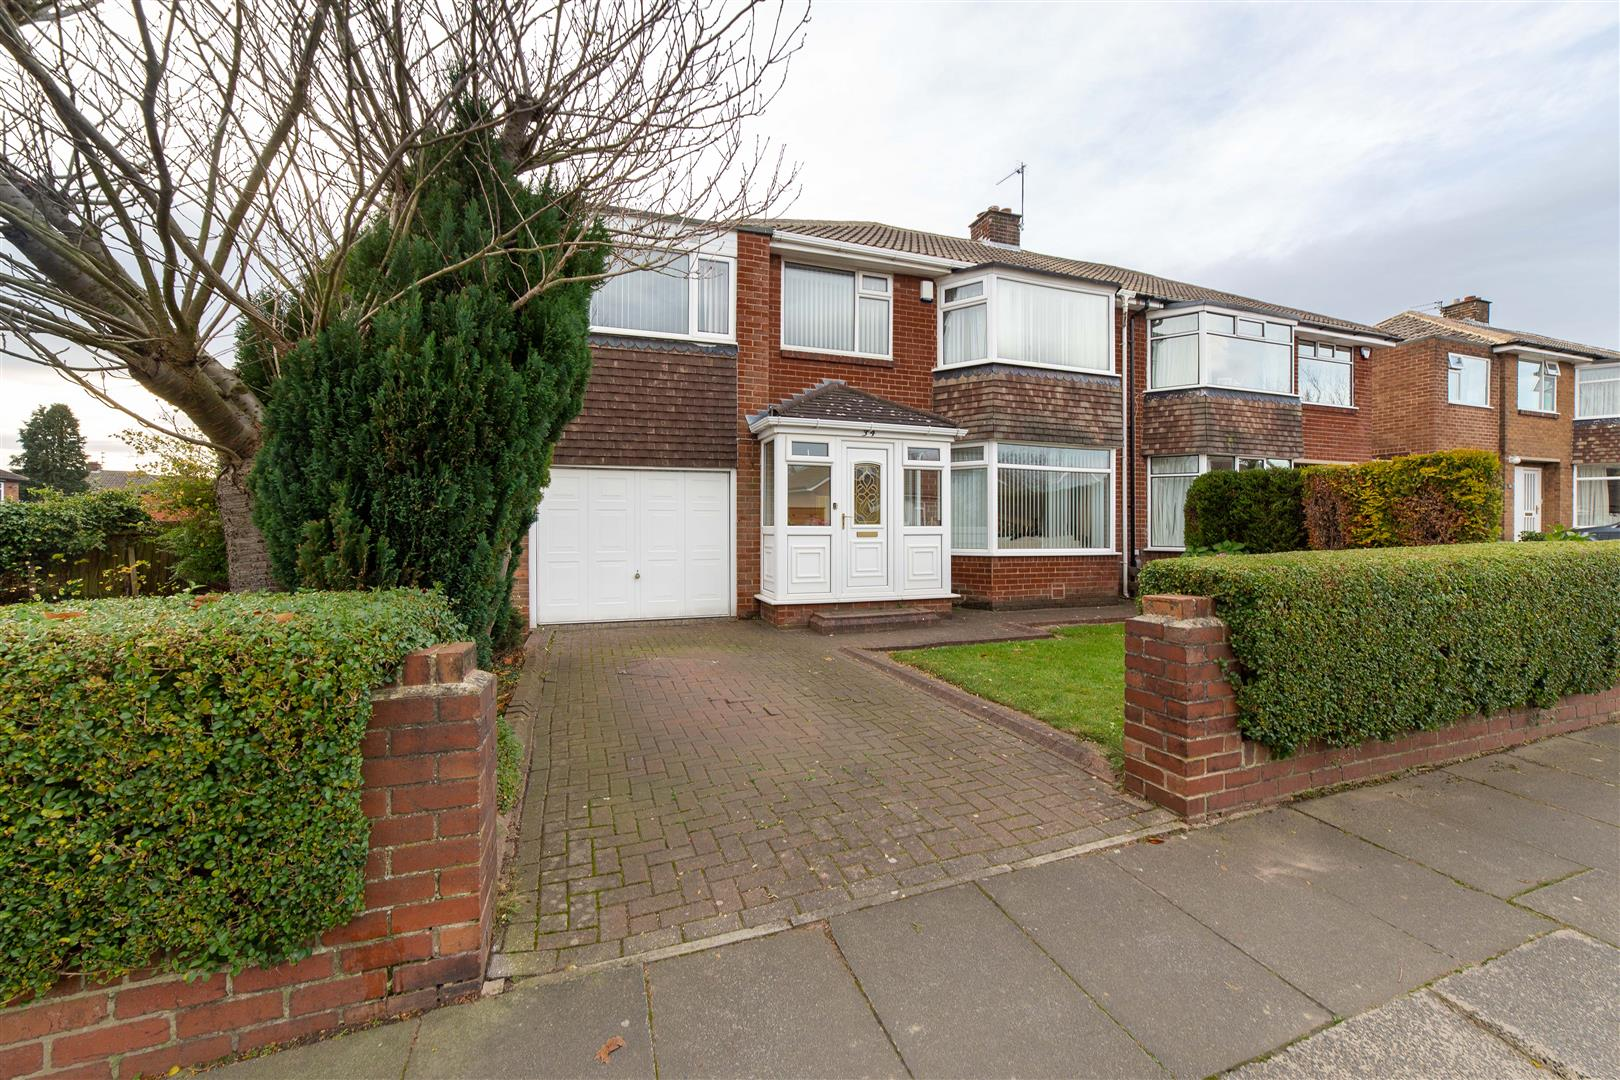 5 bed semi-detached house for sale in Newcastle Upon Tyne, NE3 4RY - Property Image 1